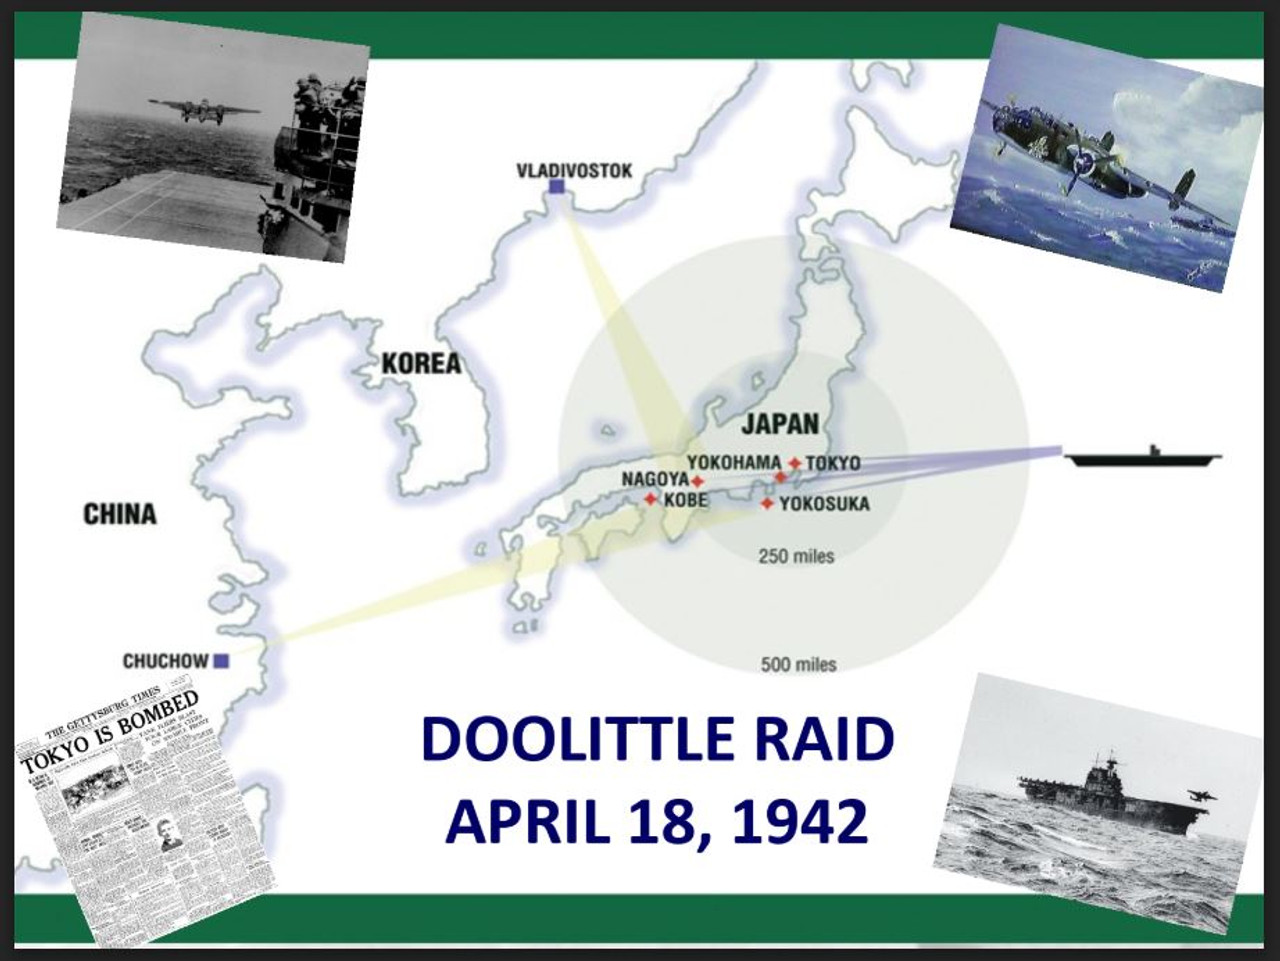 The Doolittle Raid - Amped Up Learning on